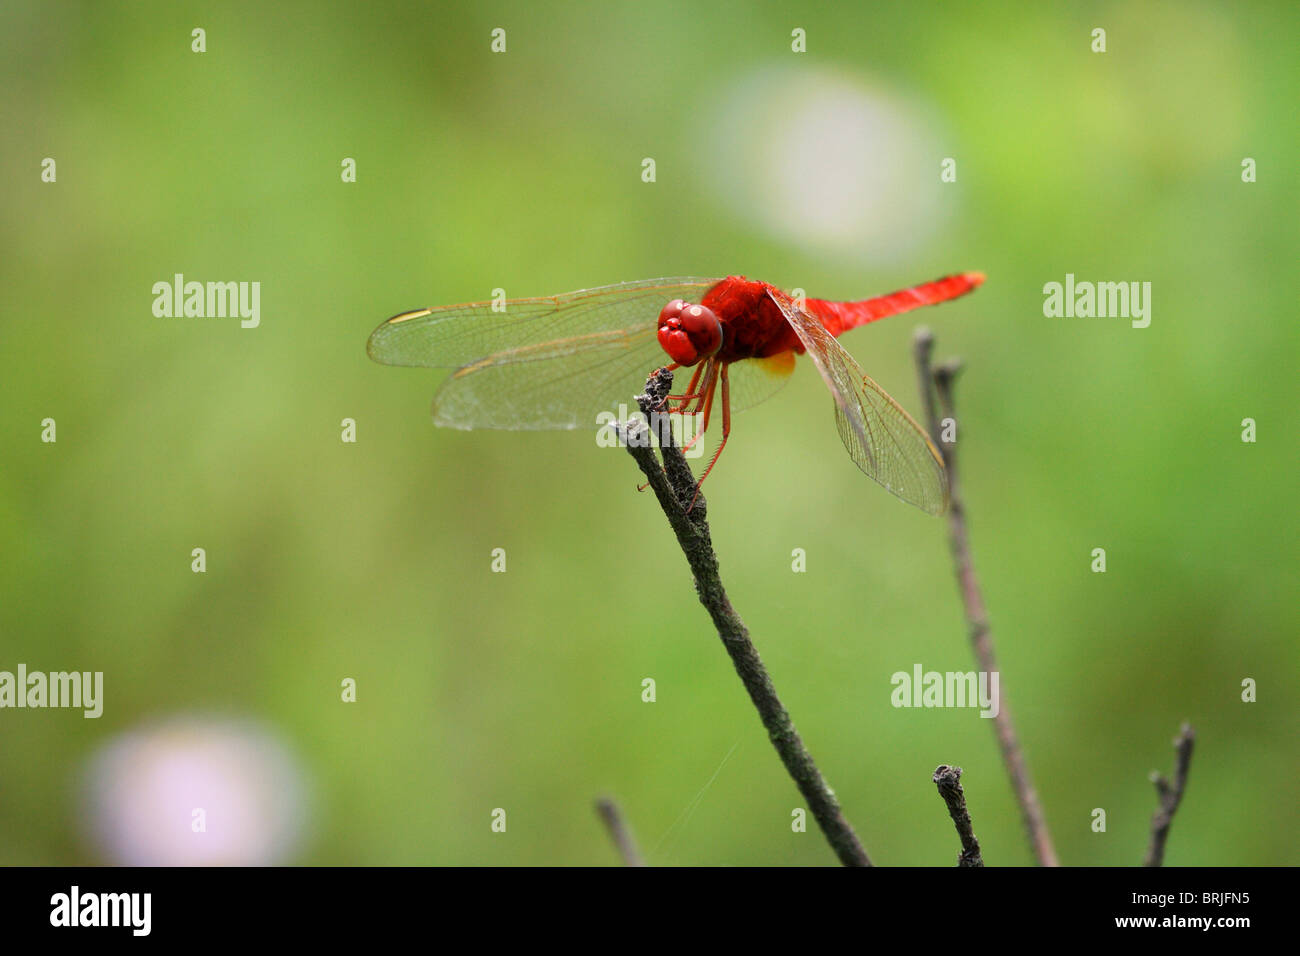 Red dragonfly sitting on a stick Stock Photo